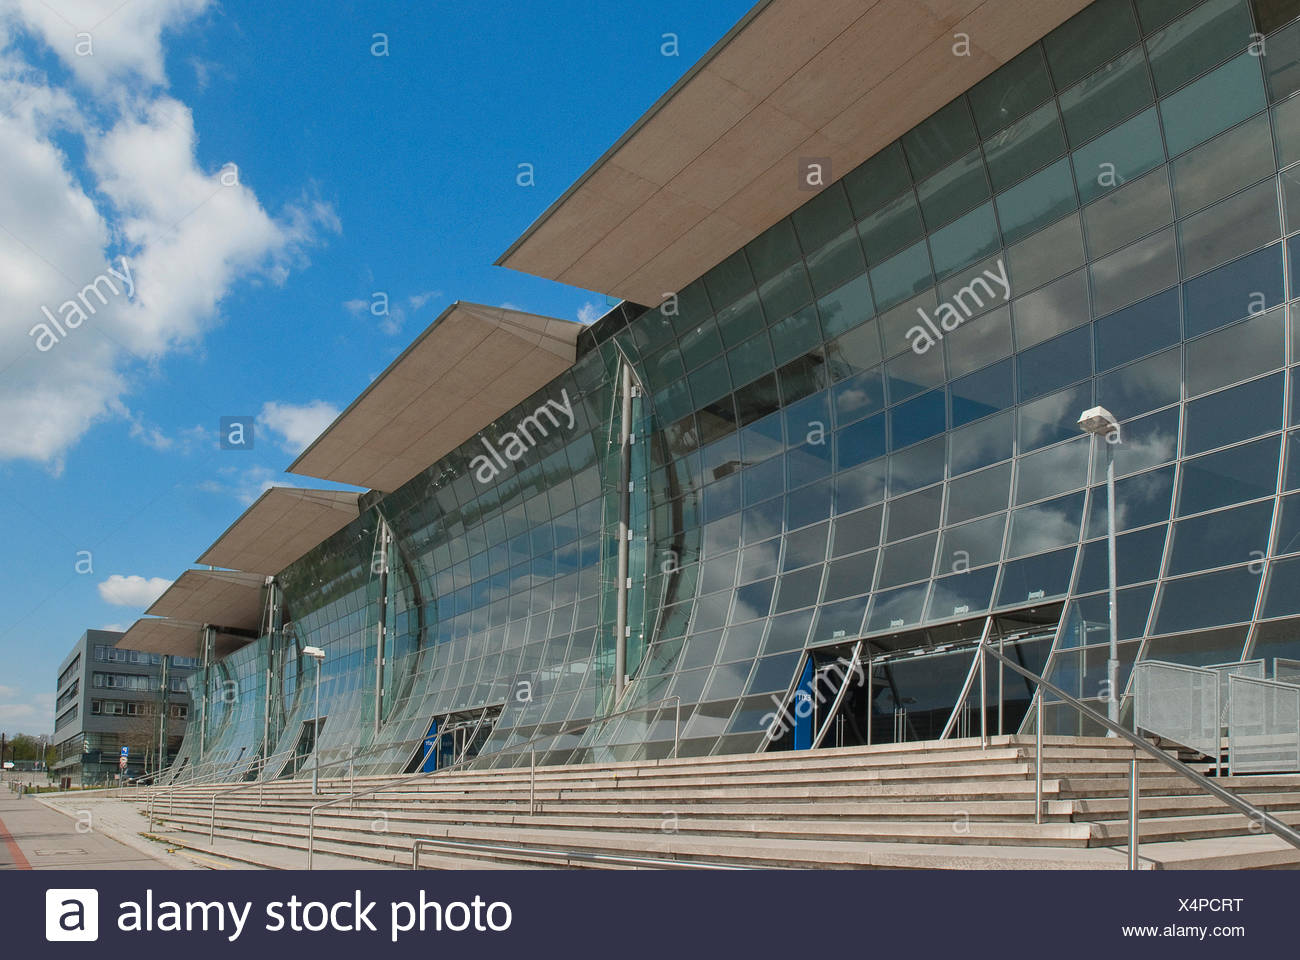 Expo Plaza Hannover Expo Plaza Hannover Expo 2000 Stock Photo 278317532 Alamy